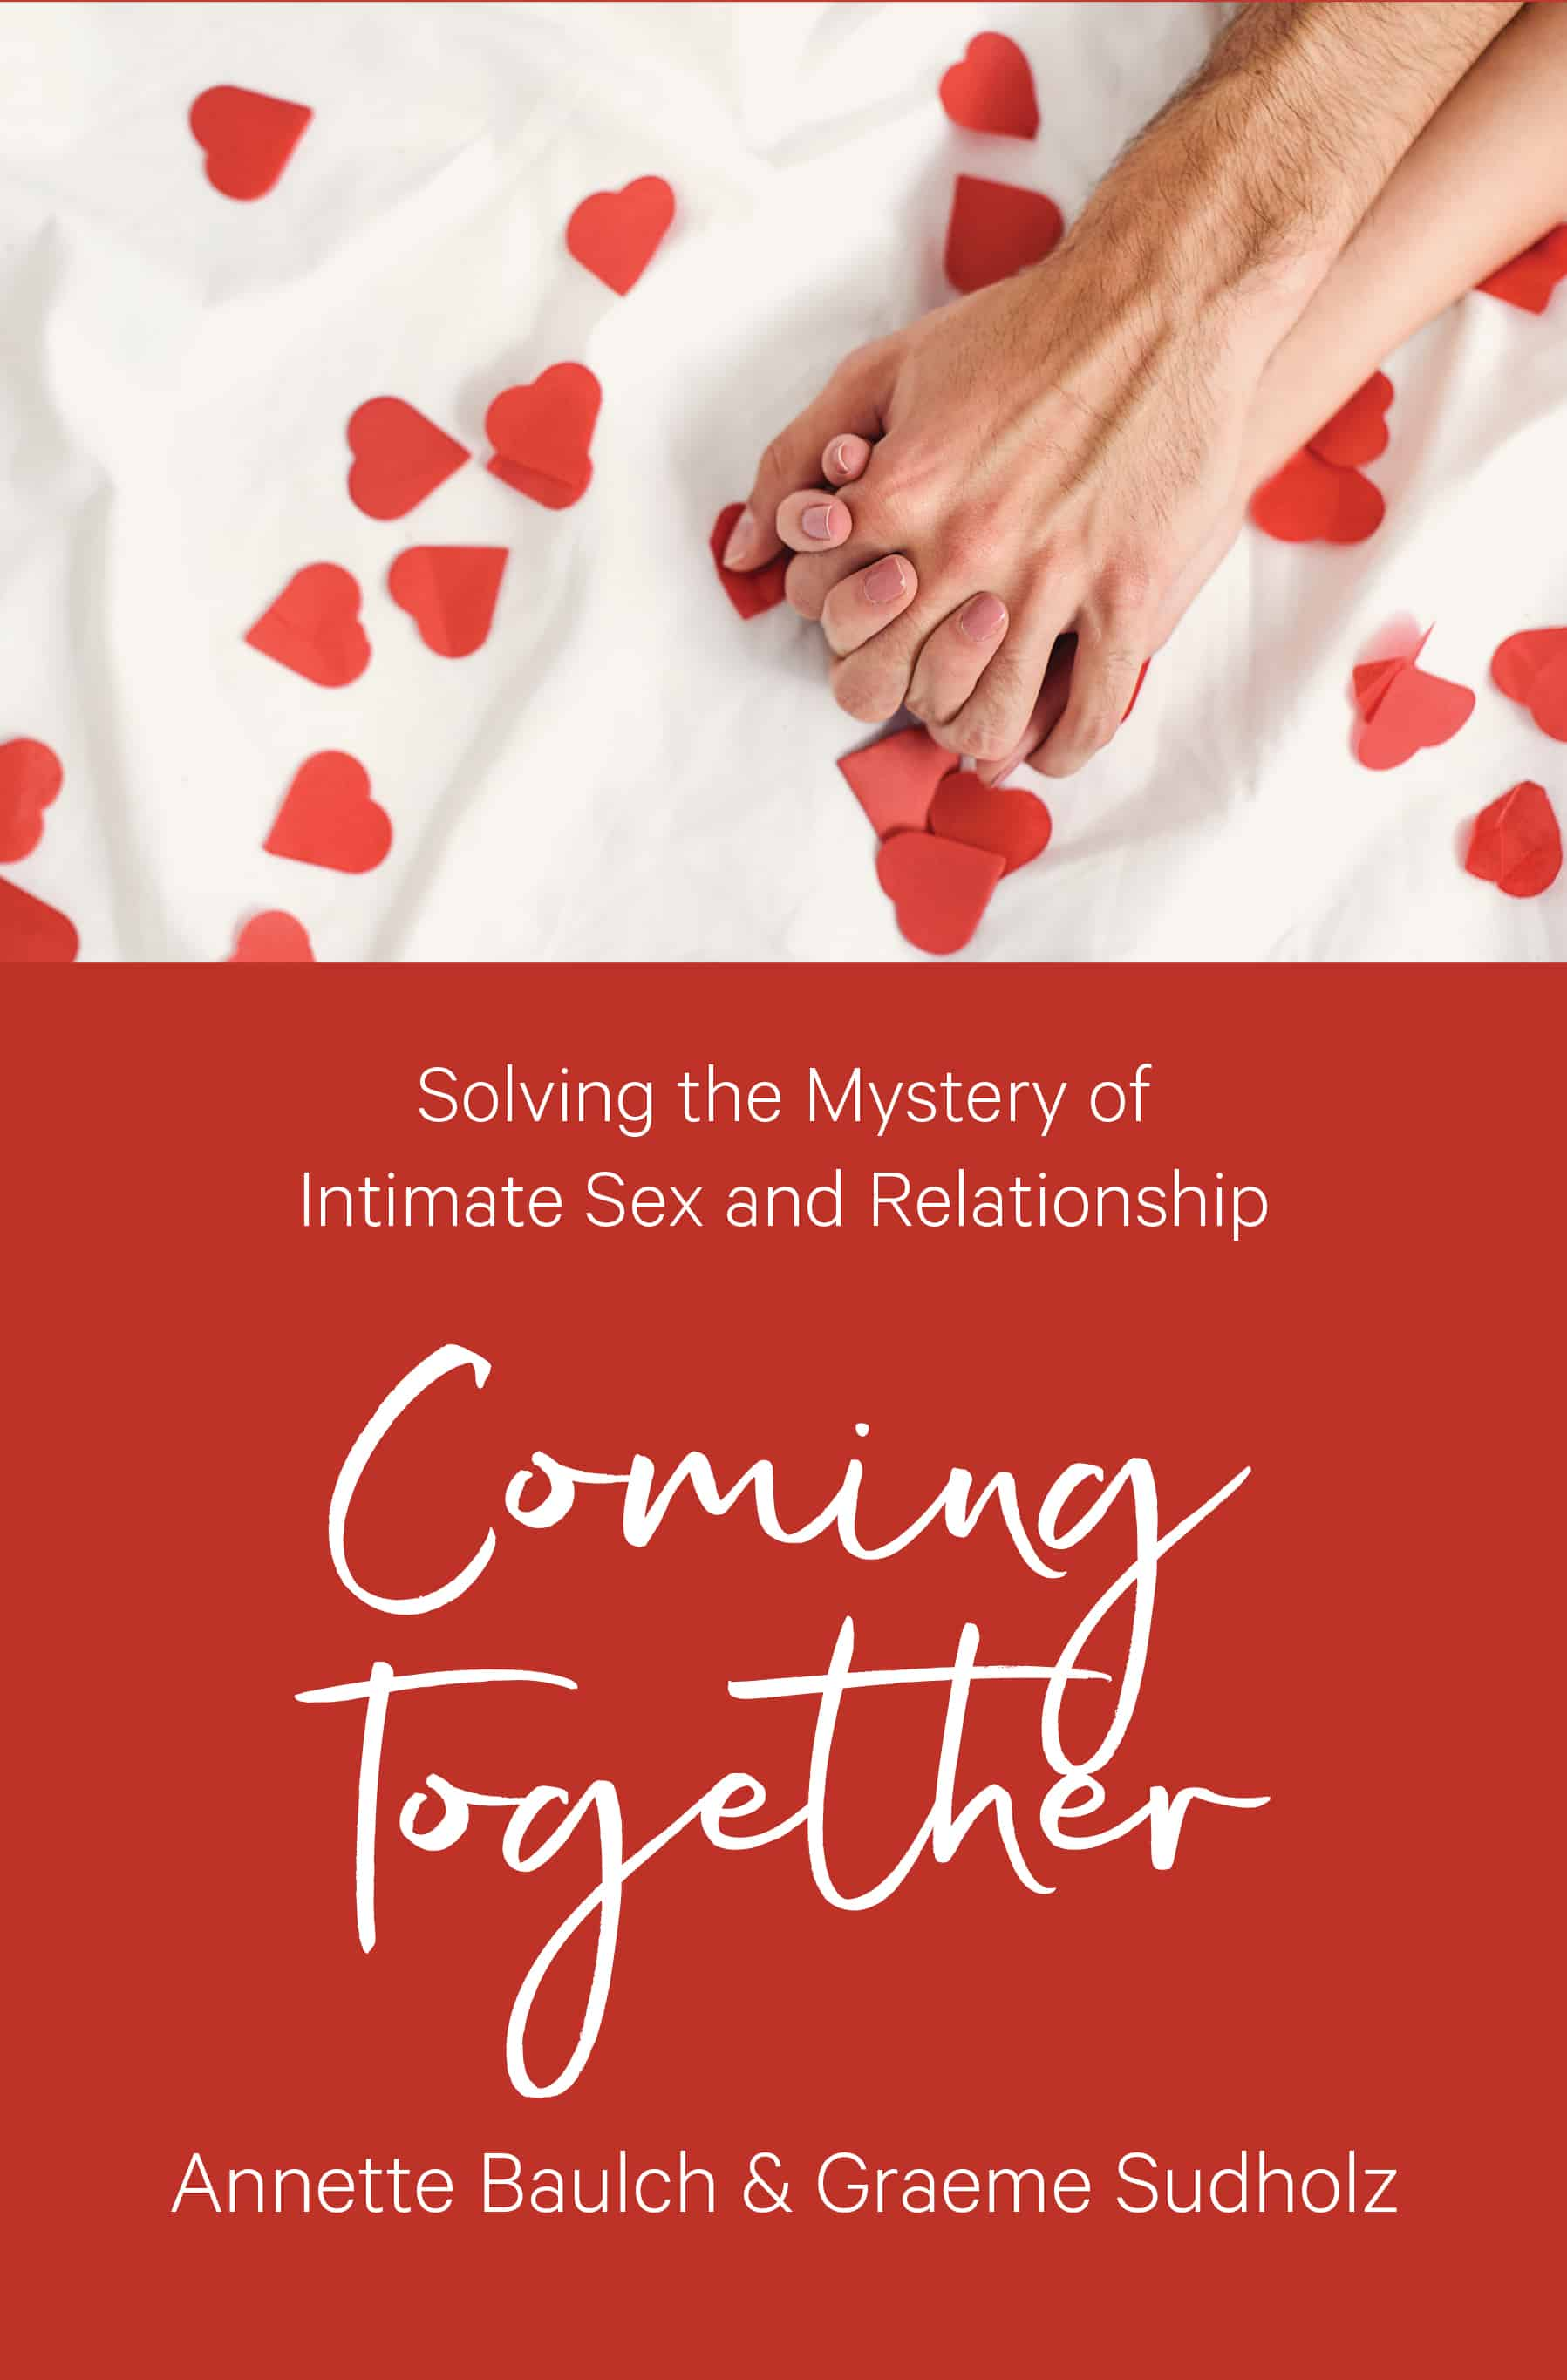 Coming Together Book Front Cover